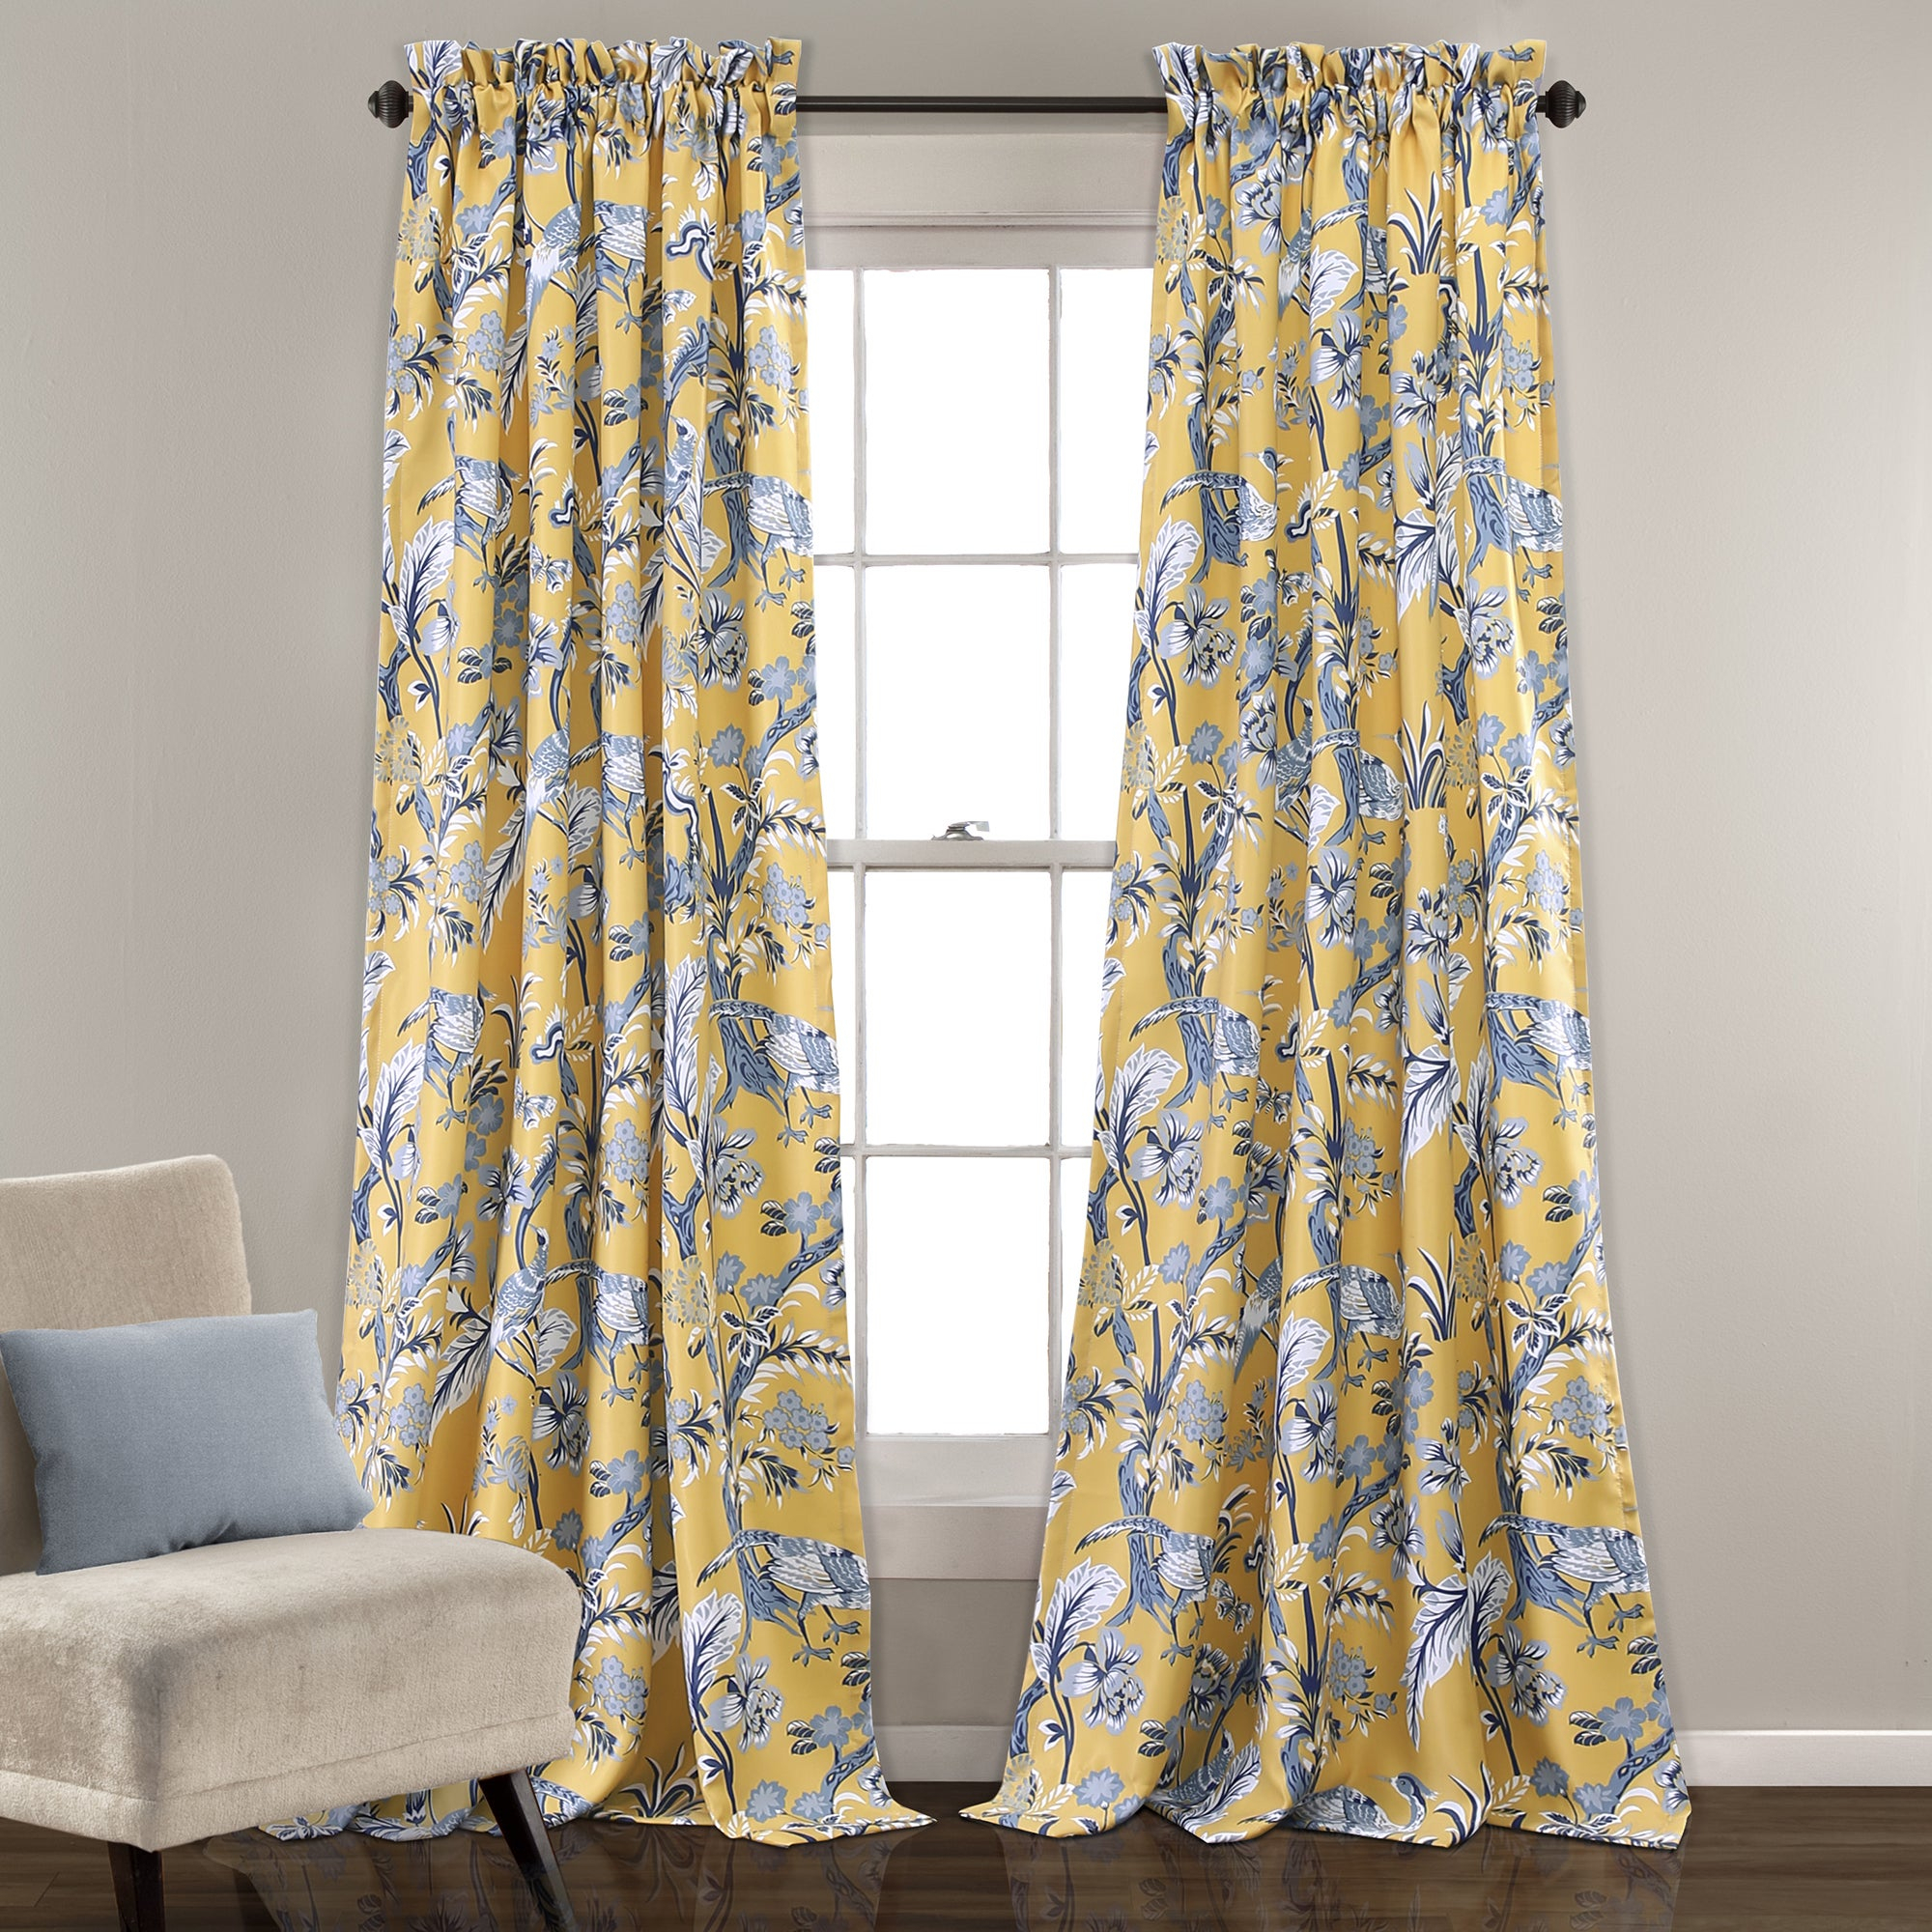 Lush Decor Dolores Room Darkening Floral Curtain Panel Pair pertaining to Floral Pattern Room Darkening Window Curtain Panel Pairs (Image 10 of 20)